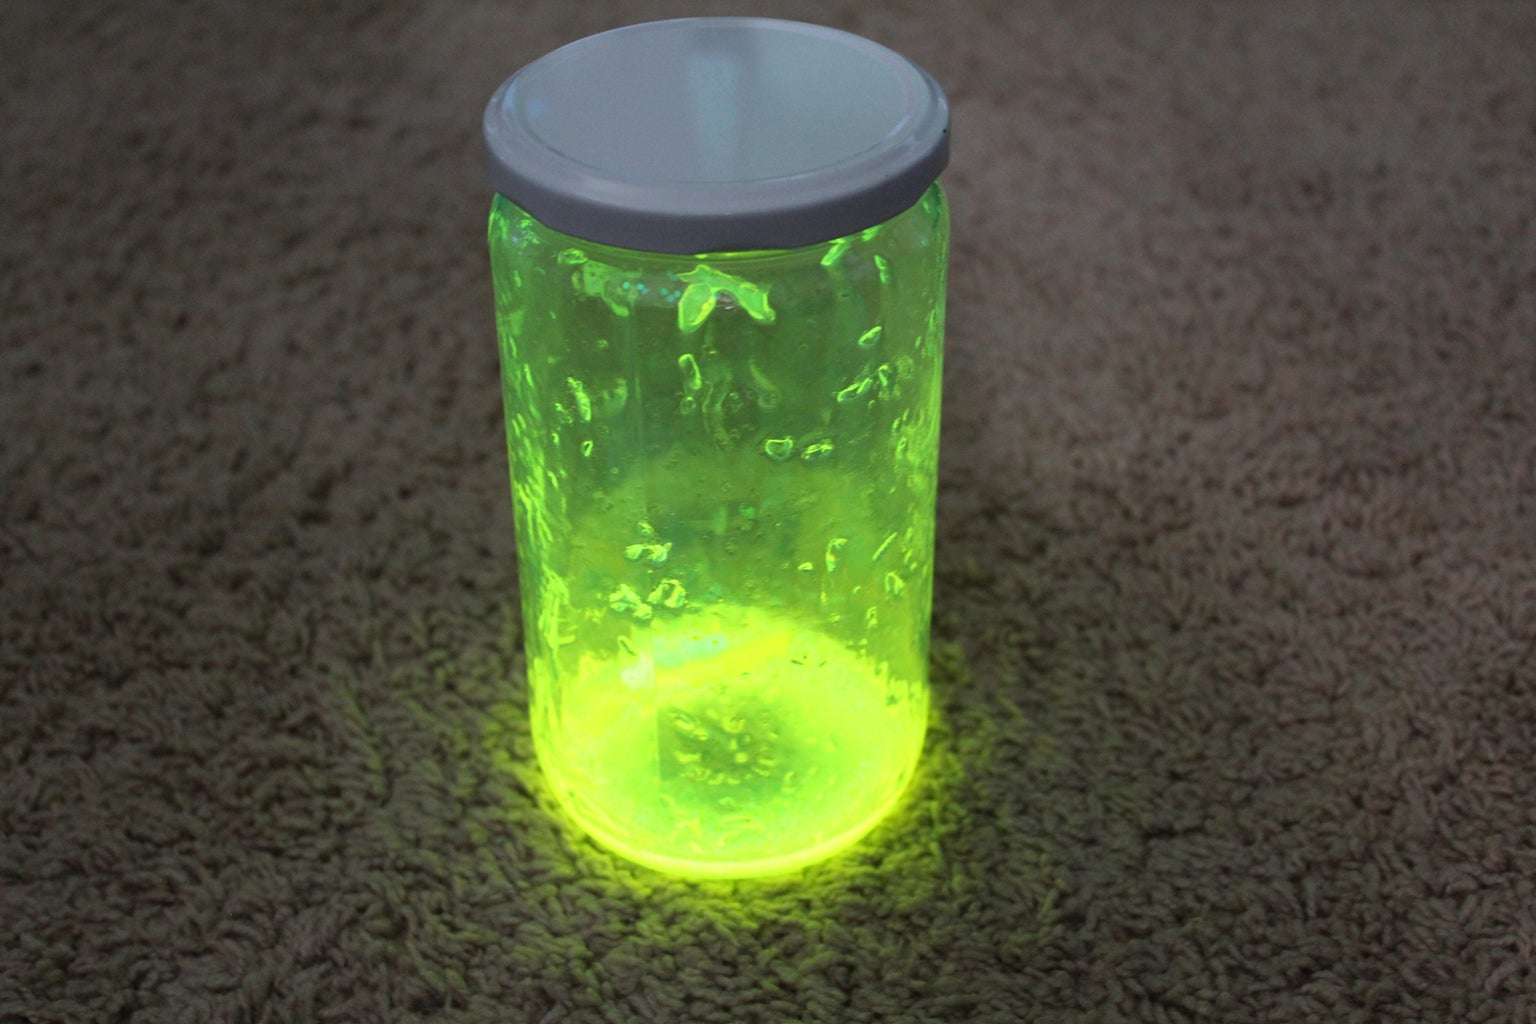 How to Make a Glow in the Dark Jar